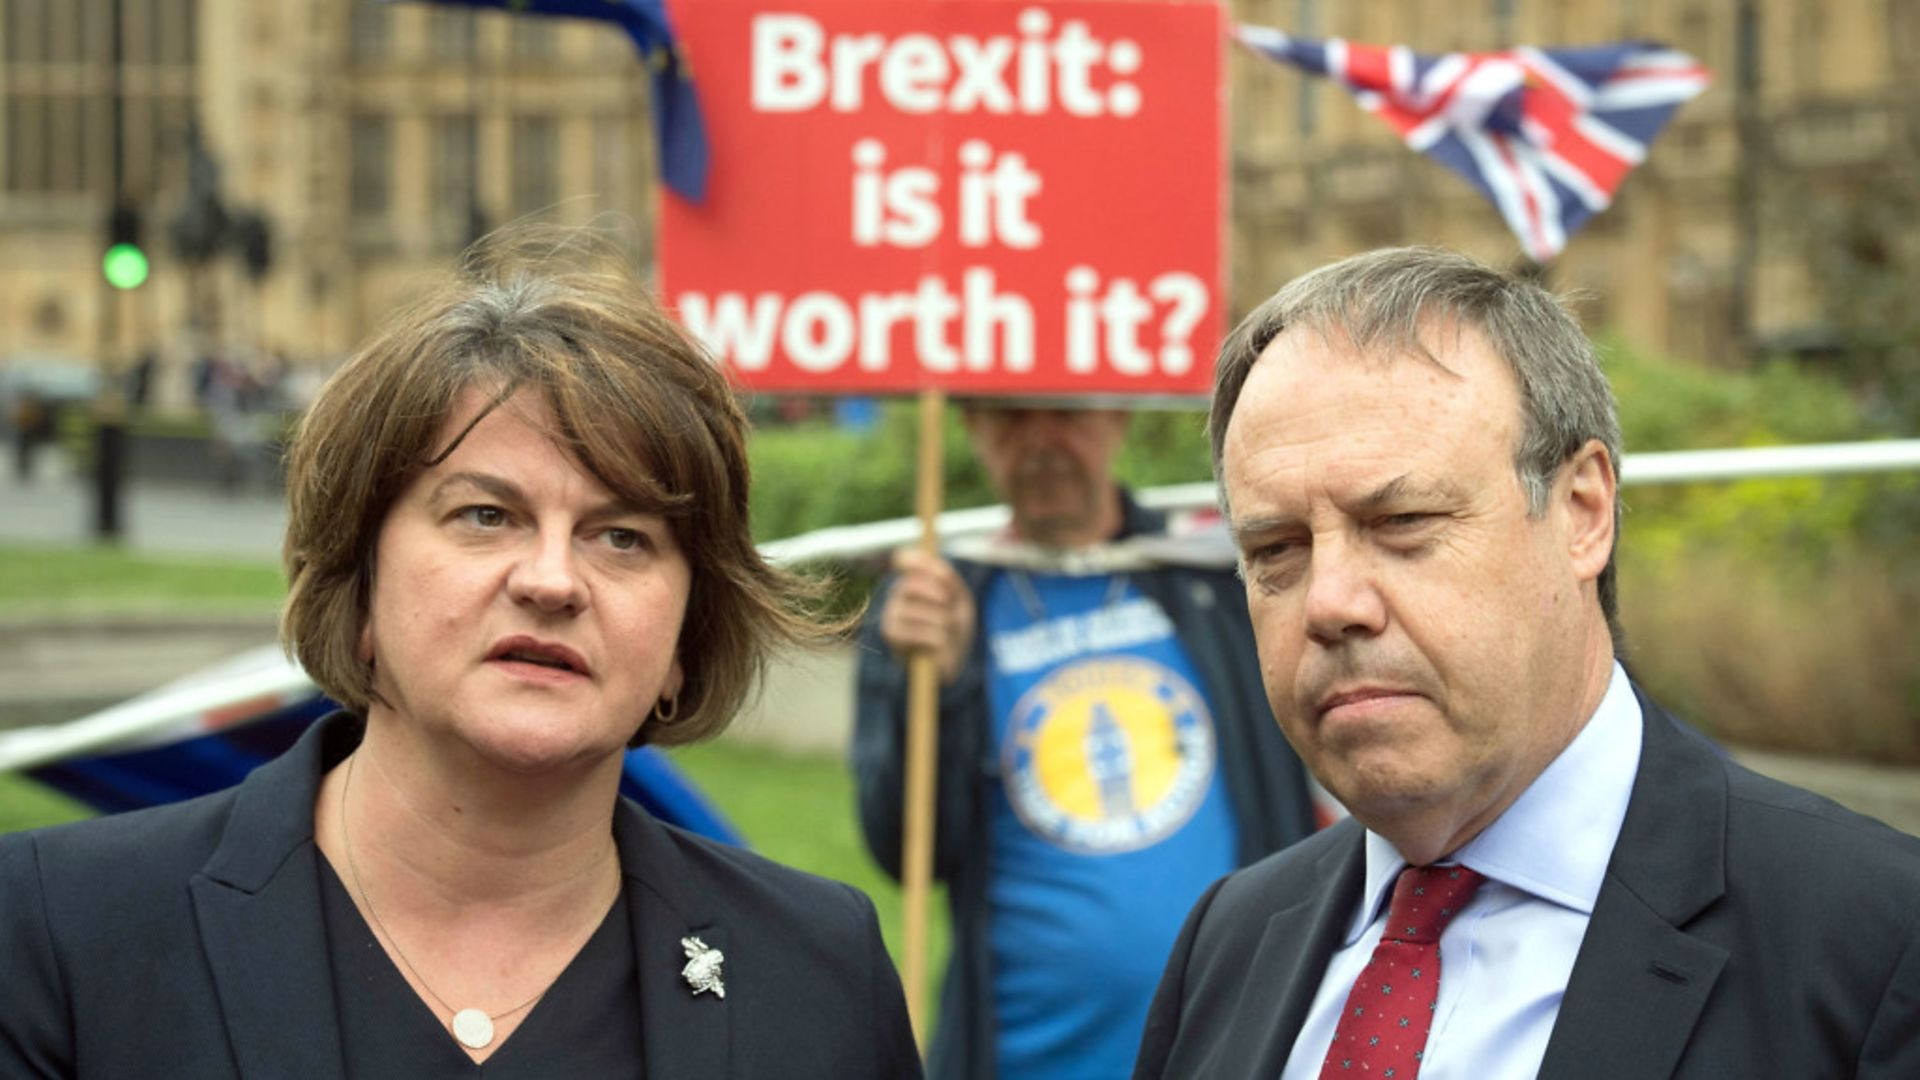 DUP leader Arlene Foster and deputy leader Nigel Dodds pictured with anti-Brexit campaigner Steve Bray - Credit: PA Wire/PA Images